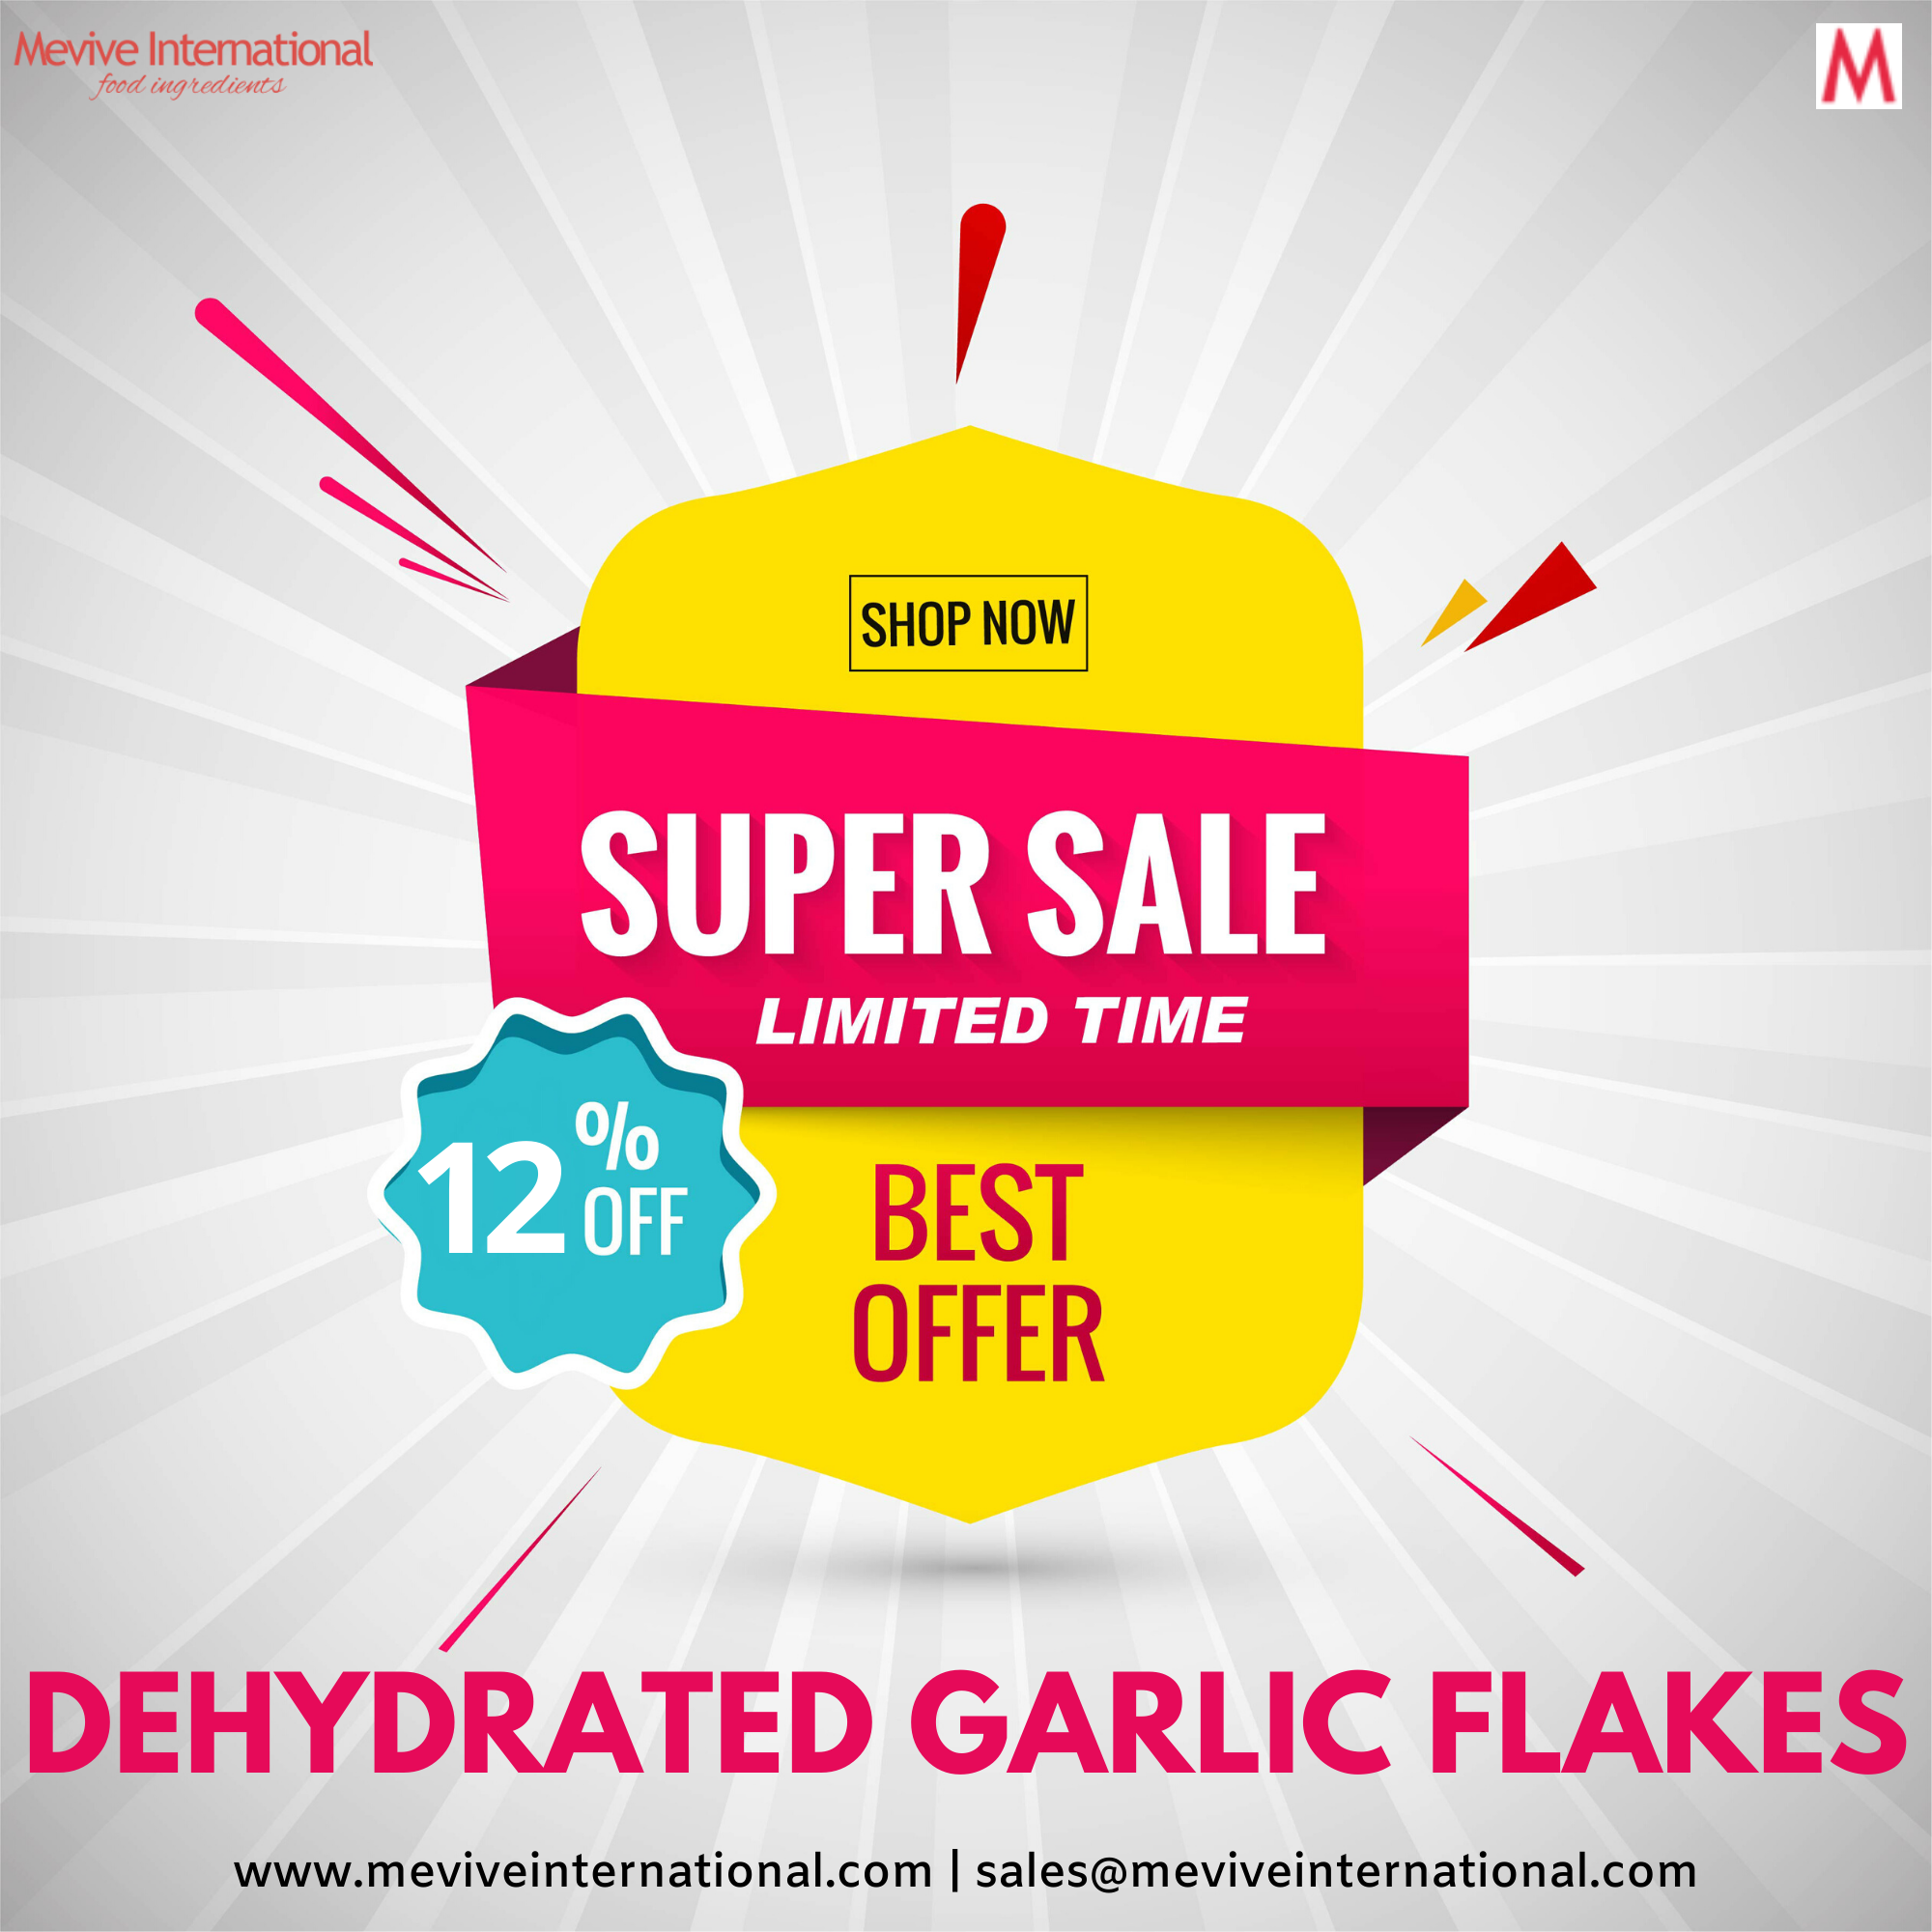 It's time to Save 12% of your Garlic Flakes procurement cost. Grab our SUPER SALE deals now!  Submit Requirement >> Get Free Samples >> Raise PO  Visit: www.meviveinternational.com | sales@meviveinternational.com  #garlicflakes #dehydratedgarlic #driedgarlicflakes #garlicflakessupplier #garlicflakesexporter #masala #spicecompany #sauce #readytoeat #premix #instantfood #readytocook #foodingredients